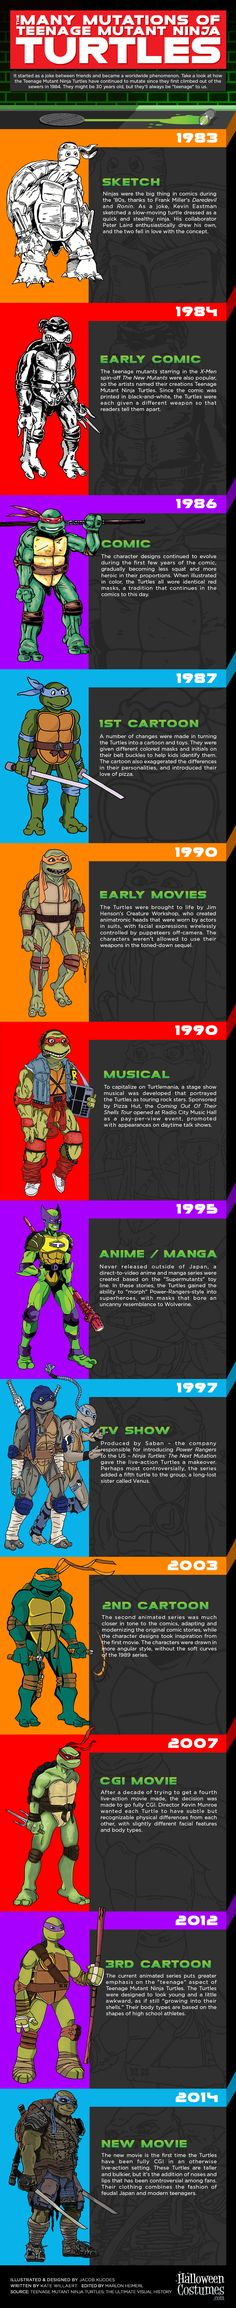 The Many Mutations of Teenage Mutant Ninja Turtles   #infographic #Entertainment #NinjaTurtles